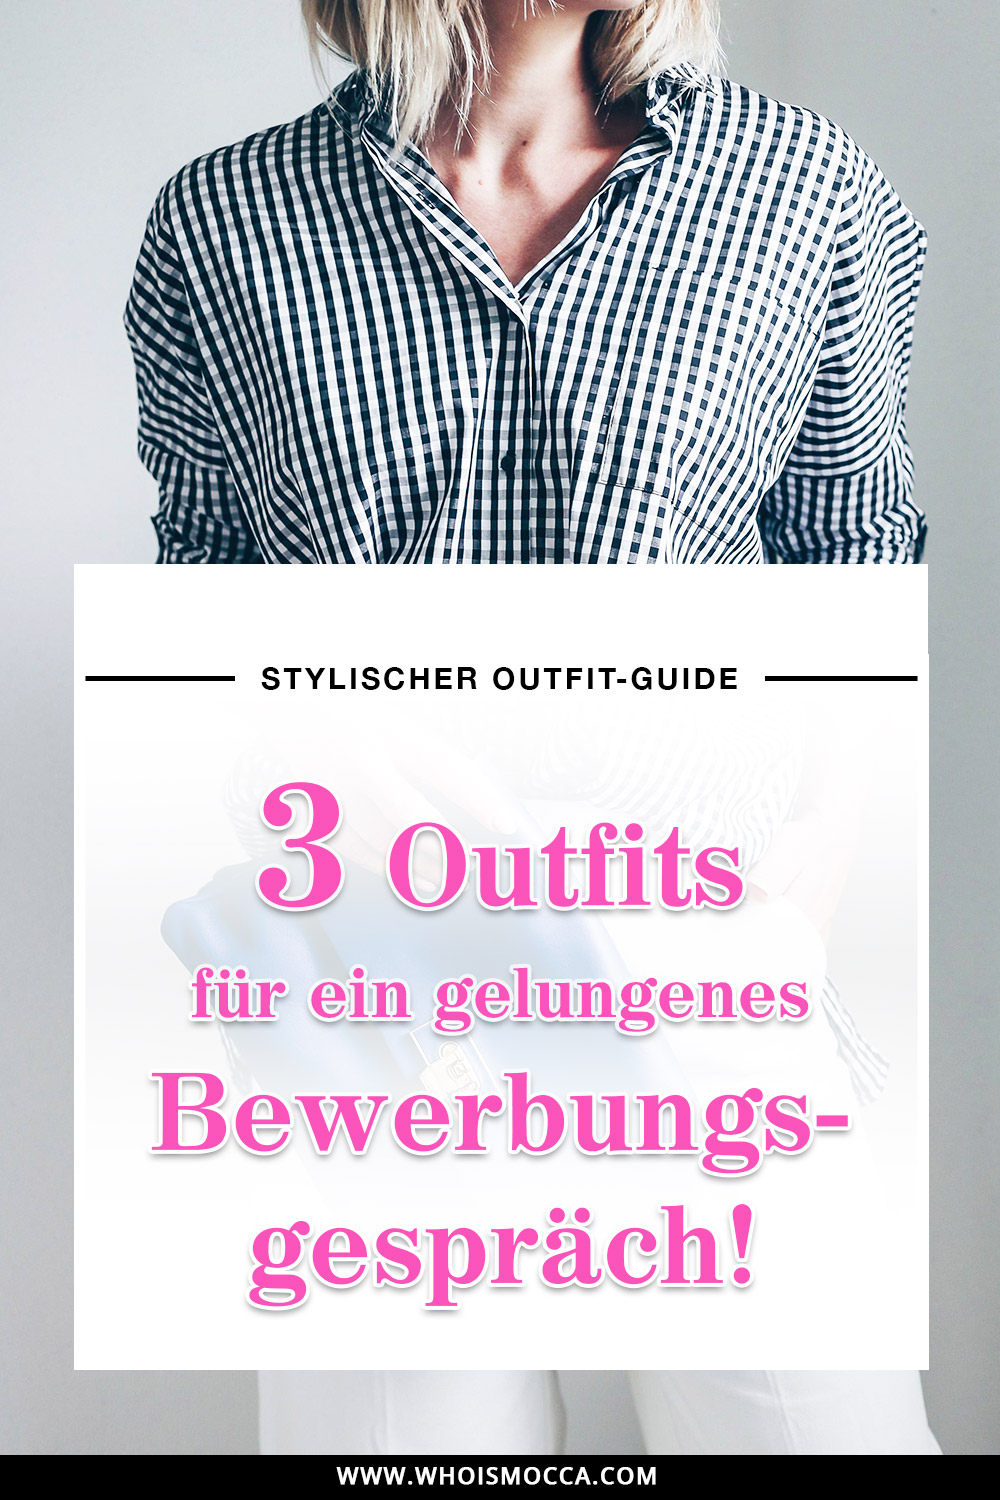 Was ziehe ich zum Vorstellungsgespräch an, Dresscode Bewerbungsgespräch, Karriere Blog, Woman at Work, Style Blog, Fashion Blog, Modeblog, Business Outfits, Büro Outfits, Office Style, www.whoismocca.com